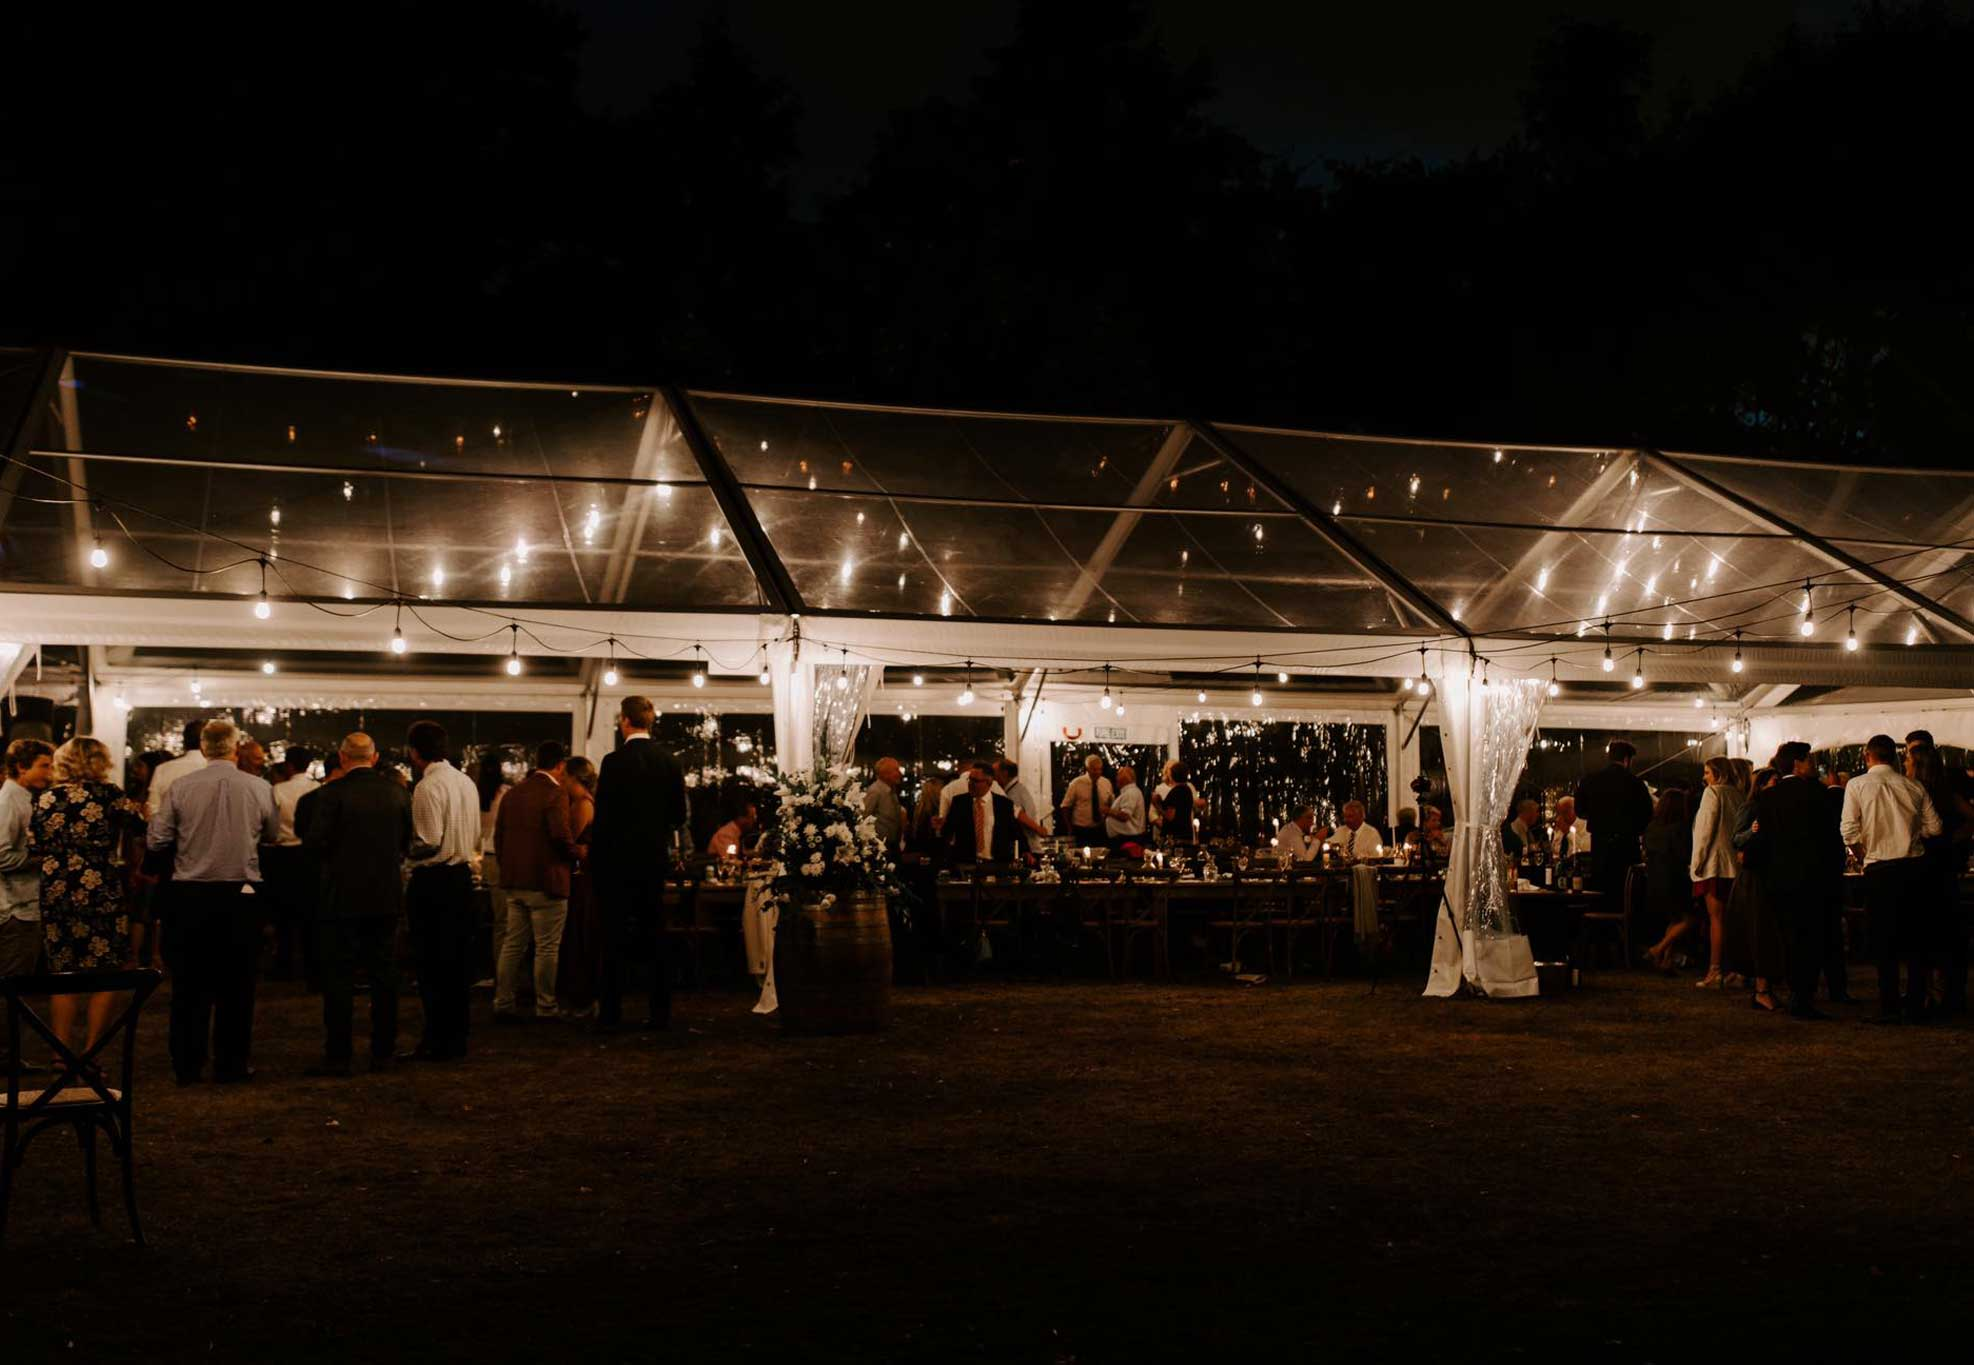 silk-estate-marquee-weddings-and-events-styling-and-hire-lightting-festoon-10